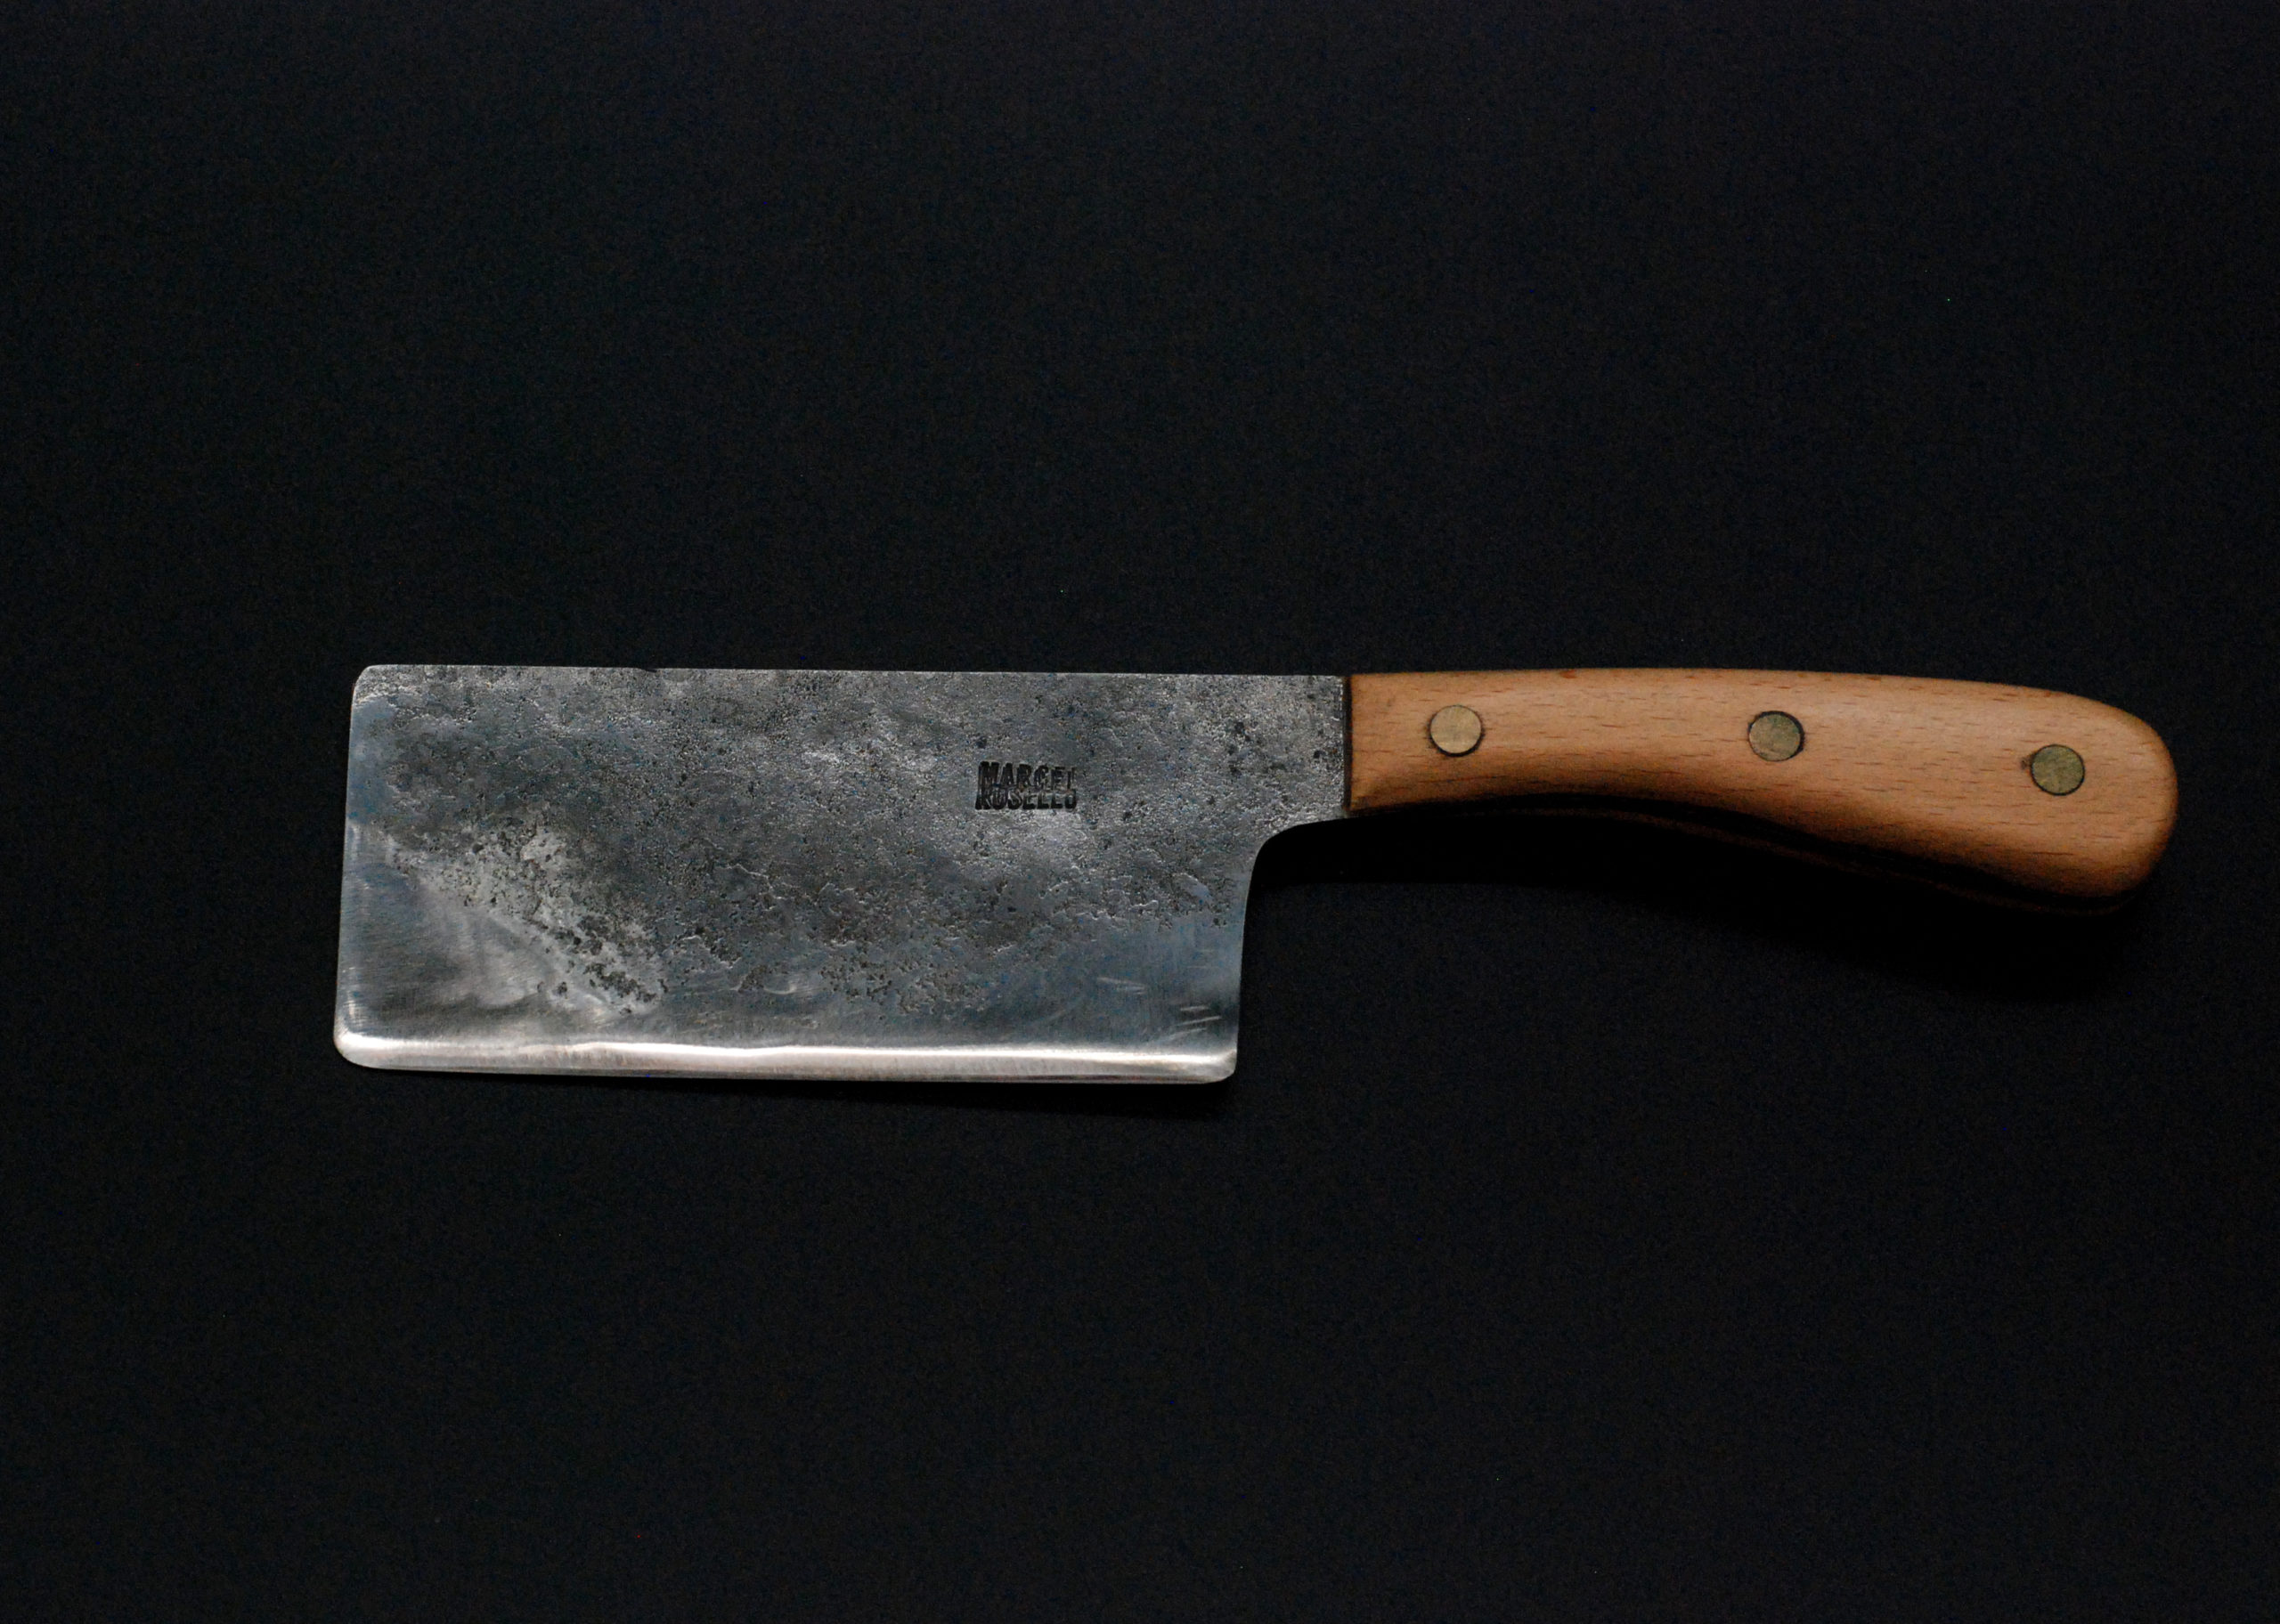 Cheese cleaver, beech wooden handle